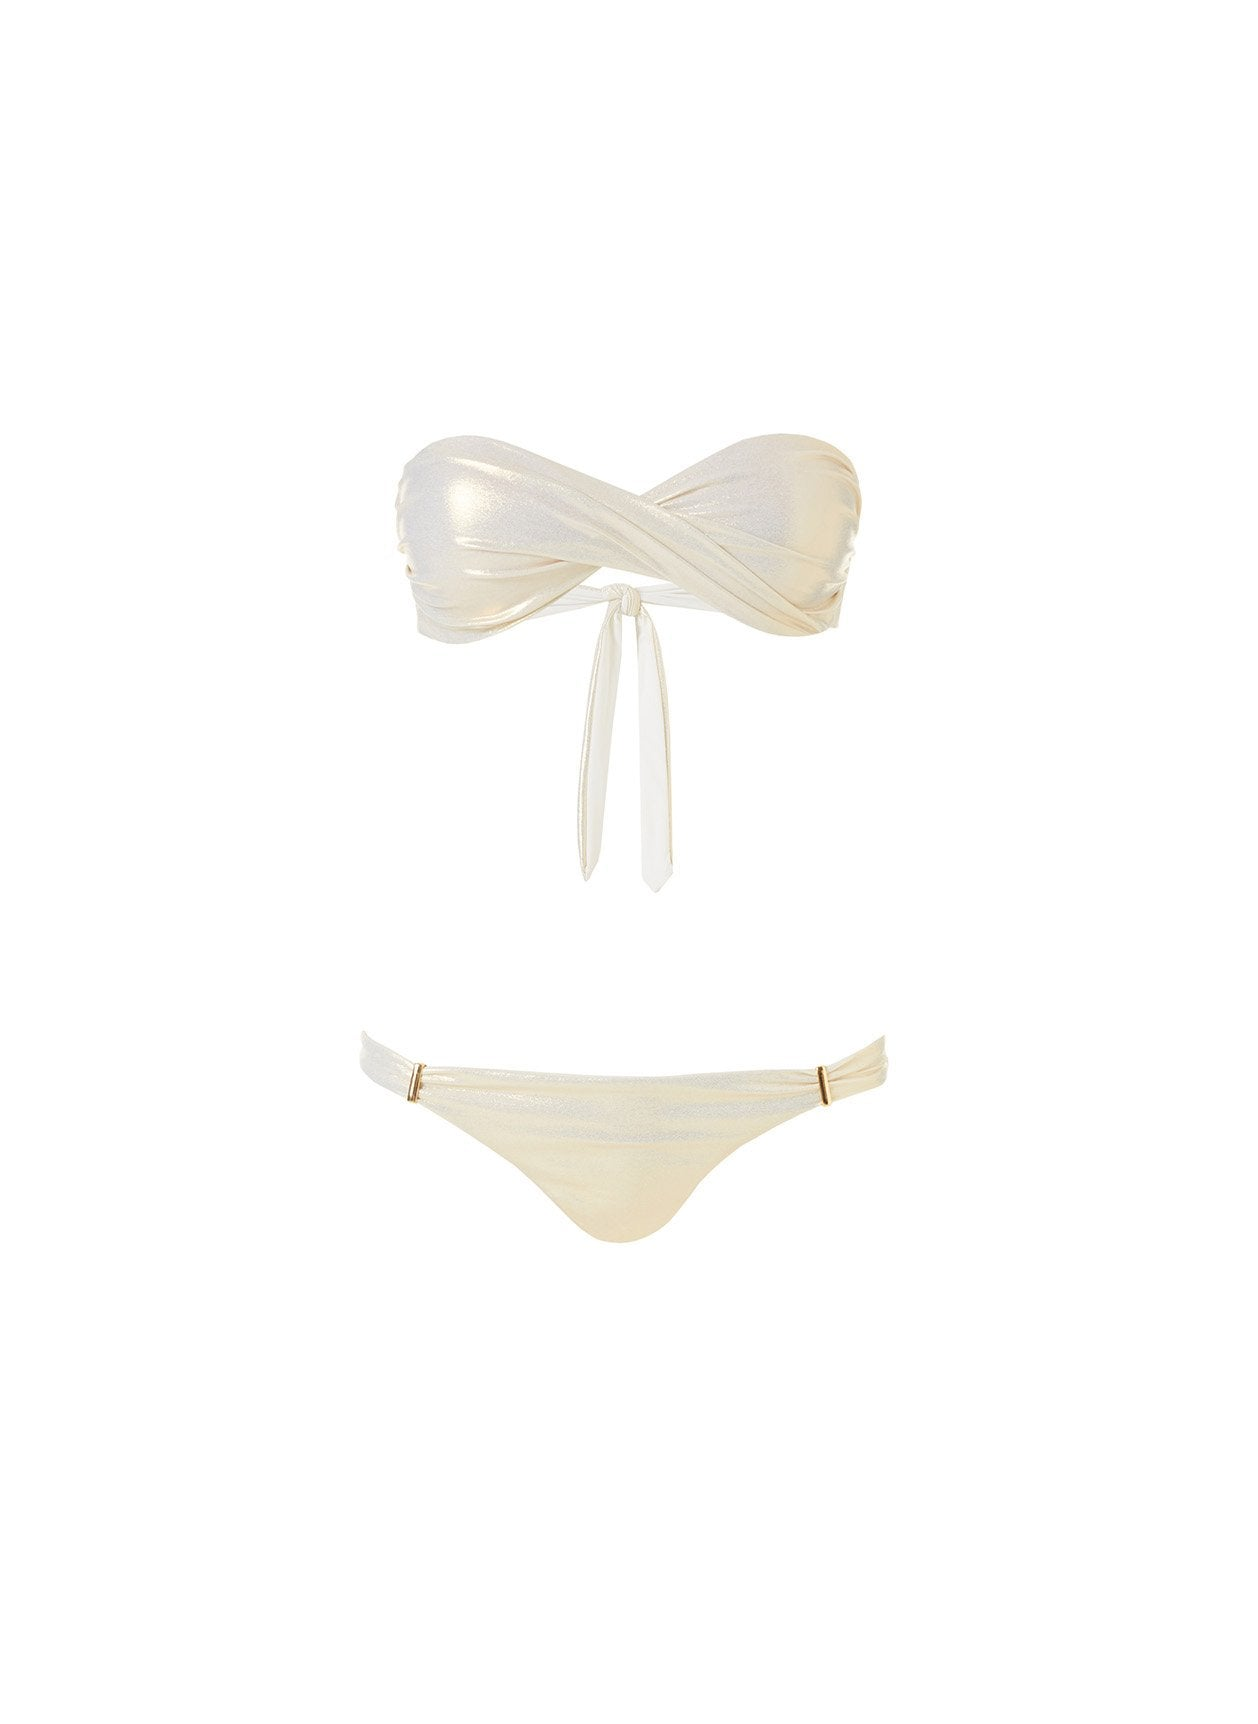 Martinique Gold Twist Front Bandeau Bikini 2020